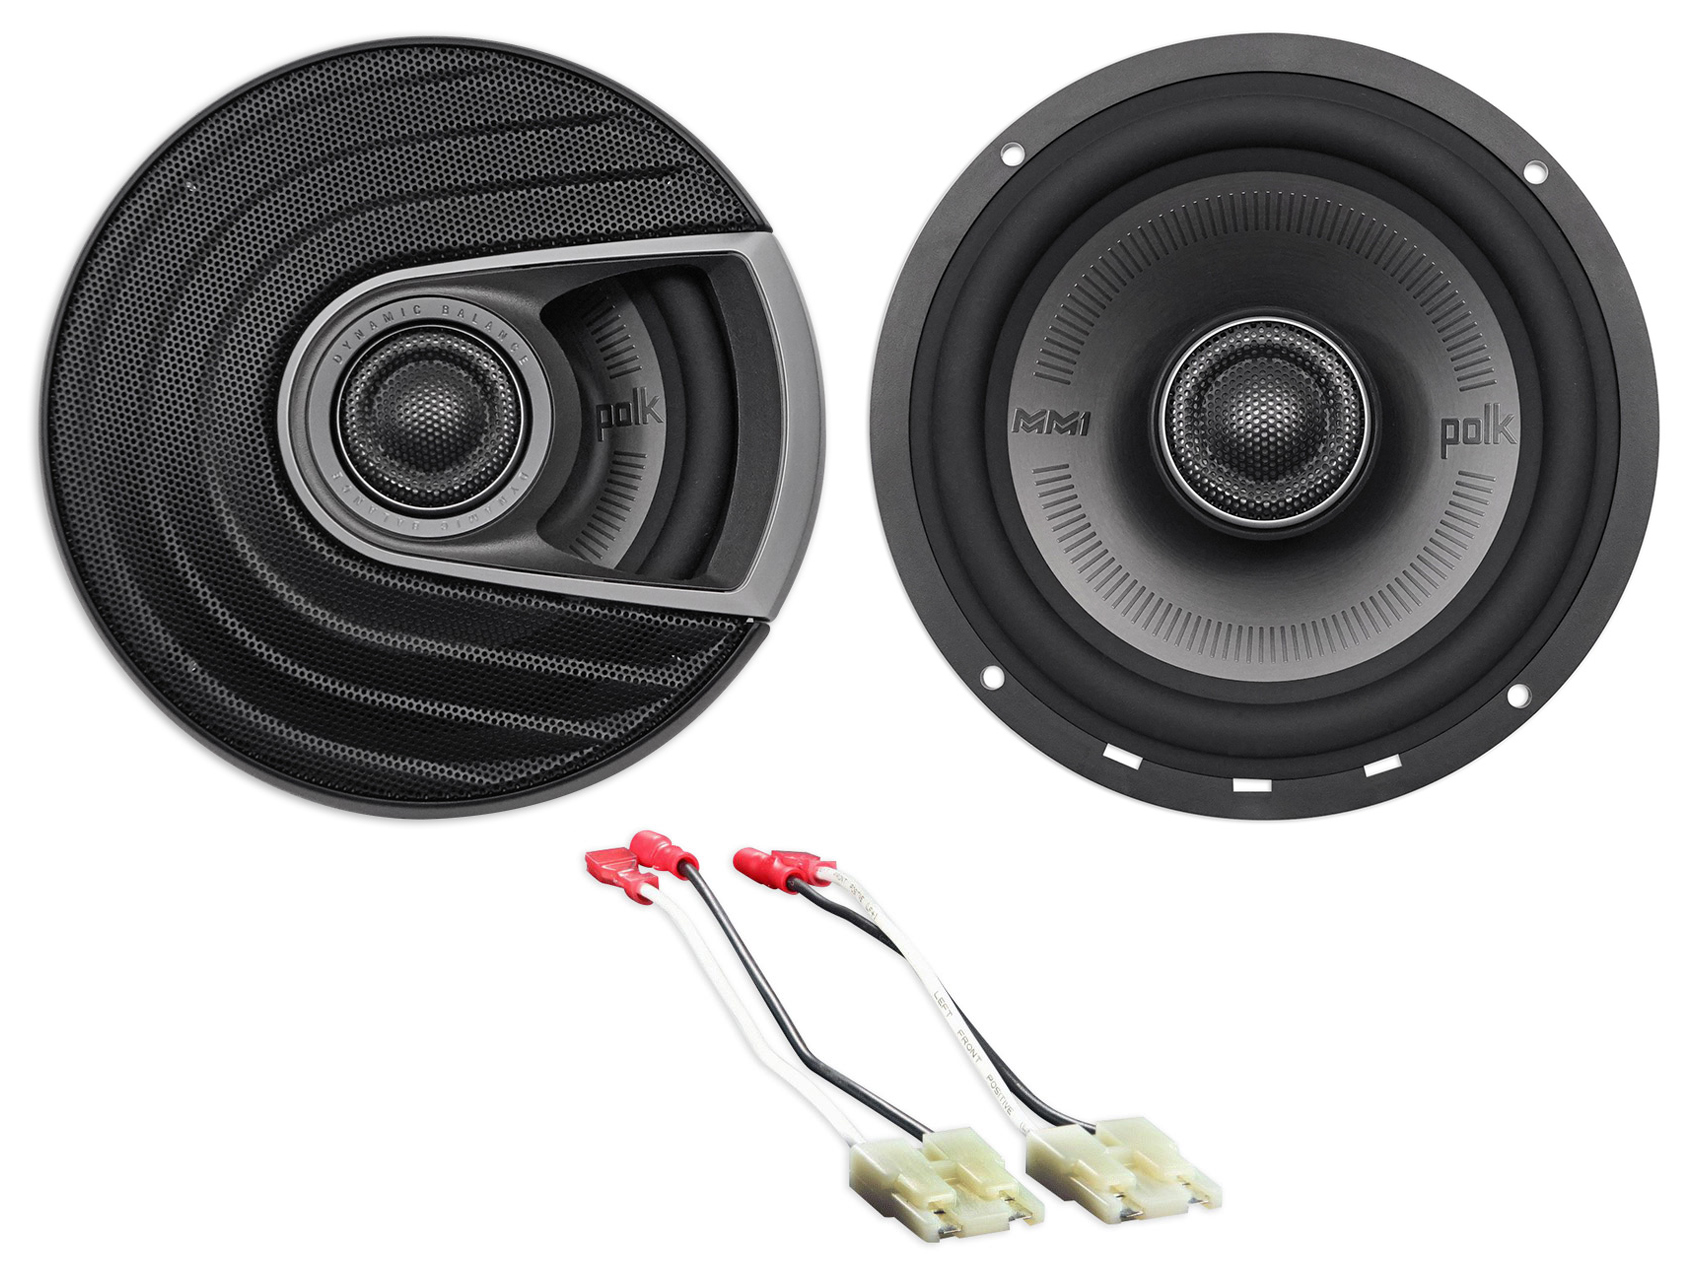 1999-2004 Jeep Grand Cherokee Polk Audio Rear Factory Speaker Replacement Kit by Polk%27s Meat